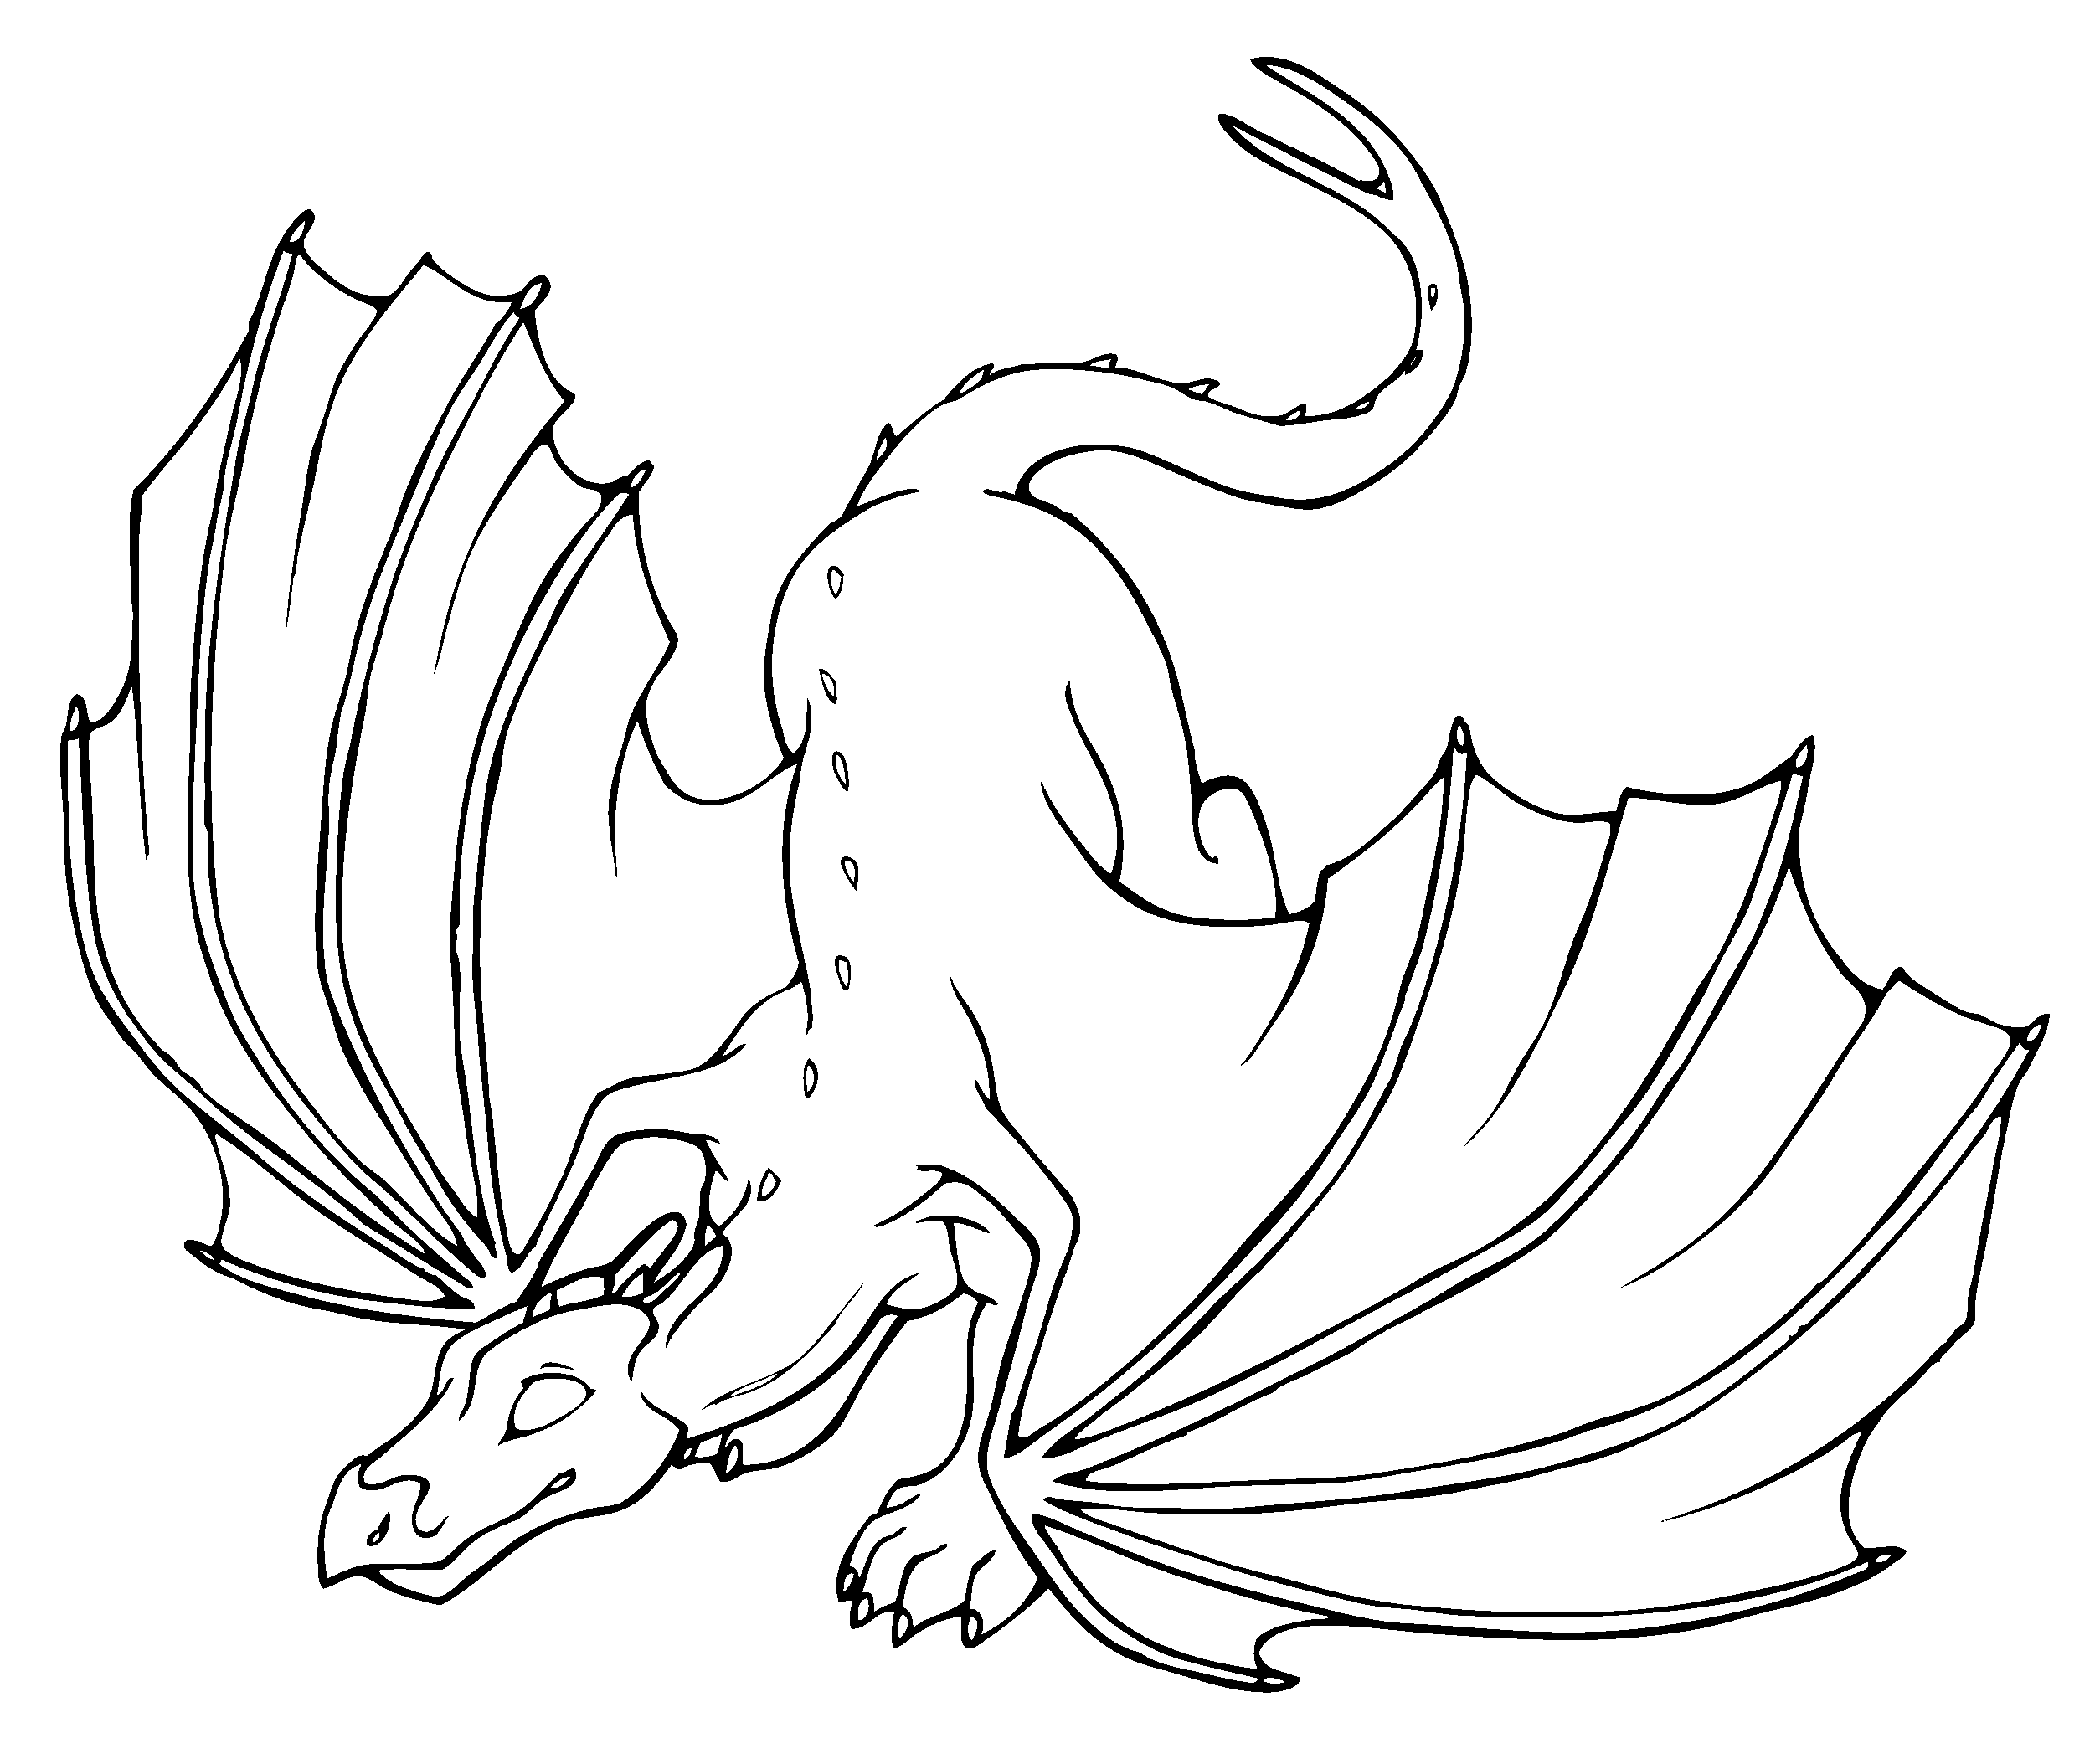 dragon gets by coloring pages - photo#46